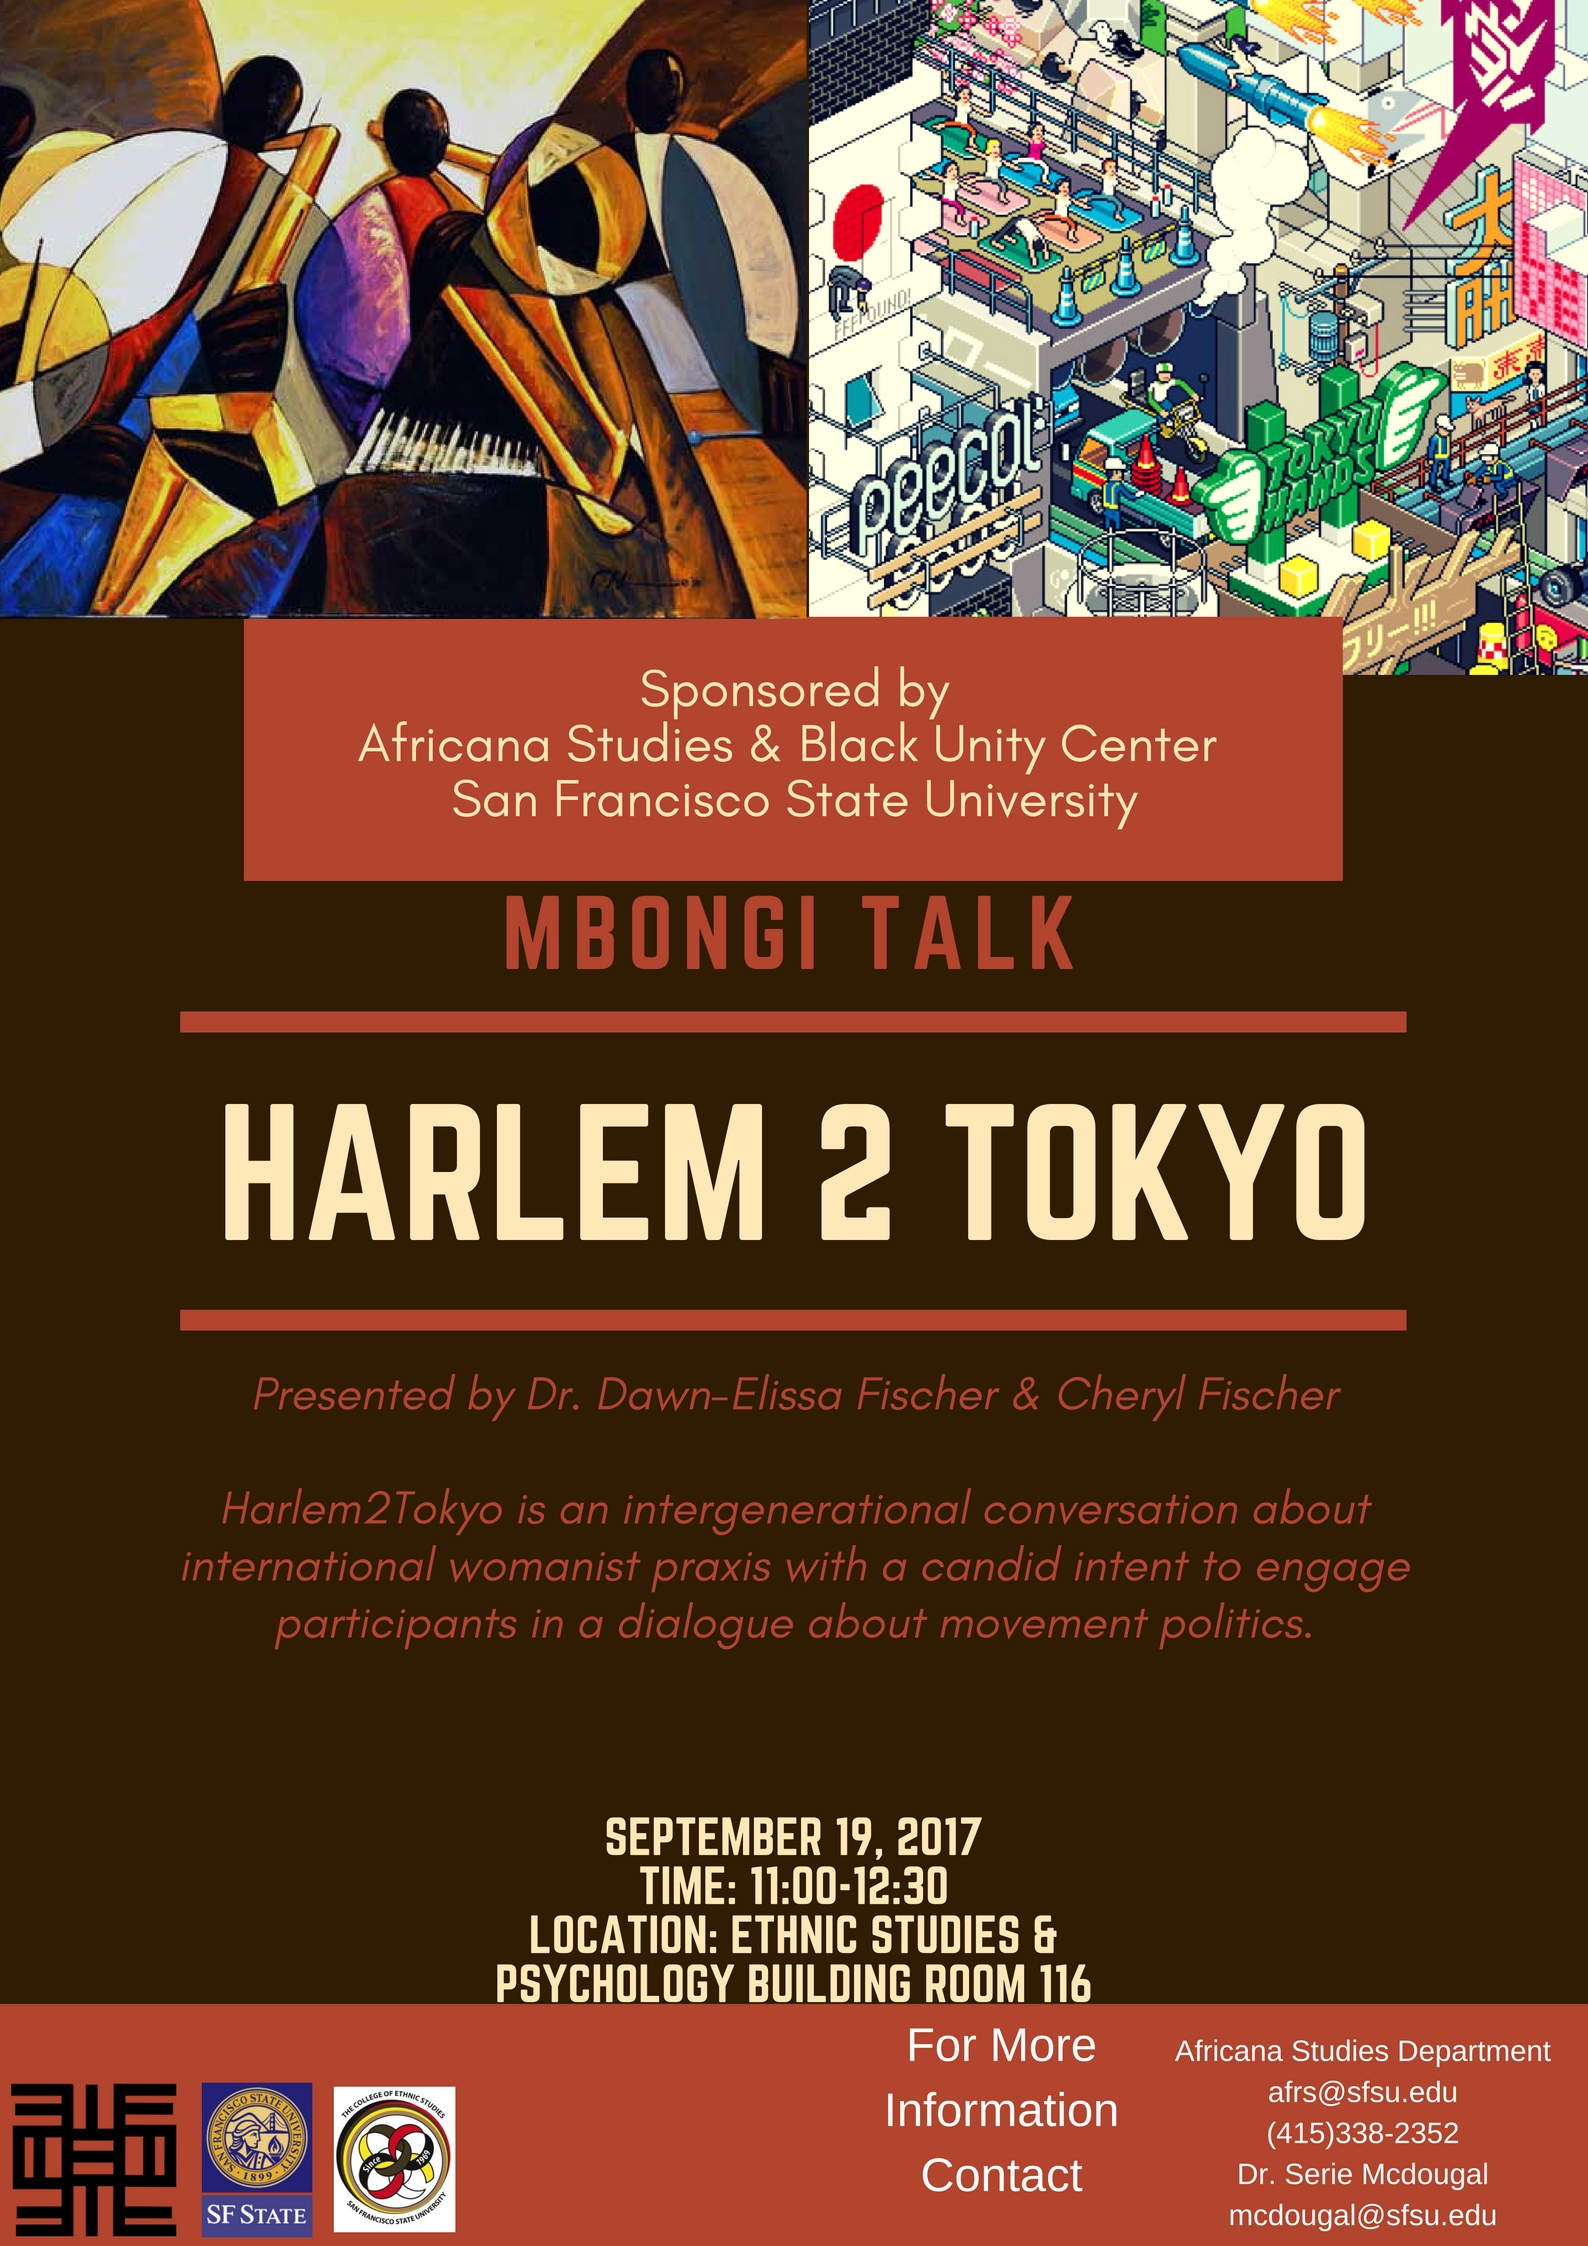 Mbongi Talk this Tuesday featuring Dr. Dawn-Elissa Fischer and Cheryl Fischer